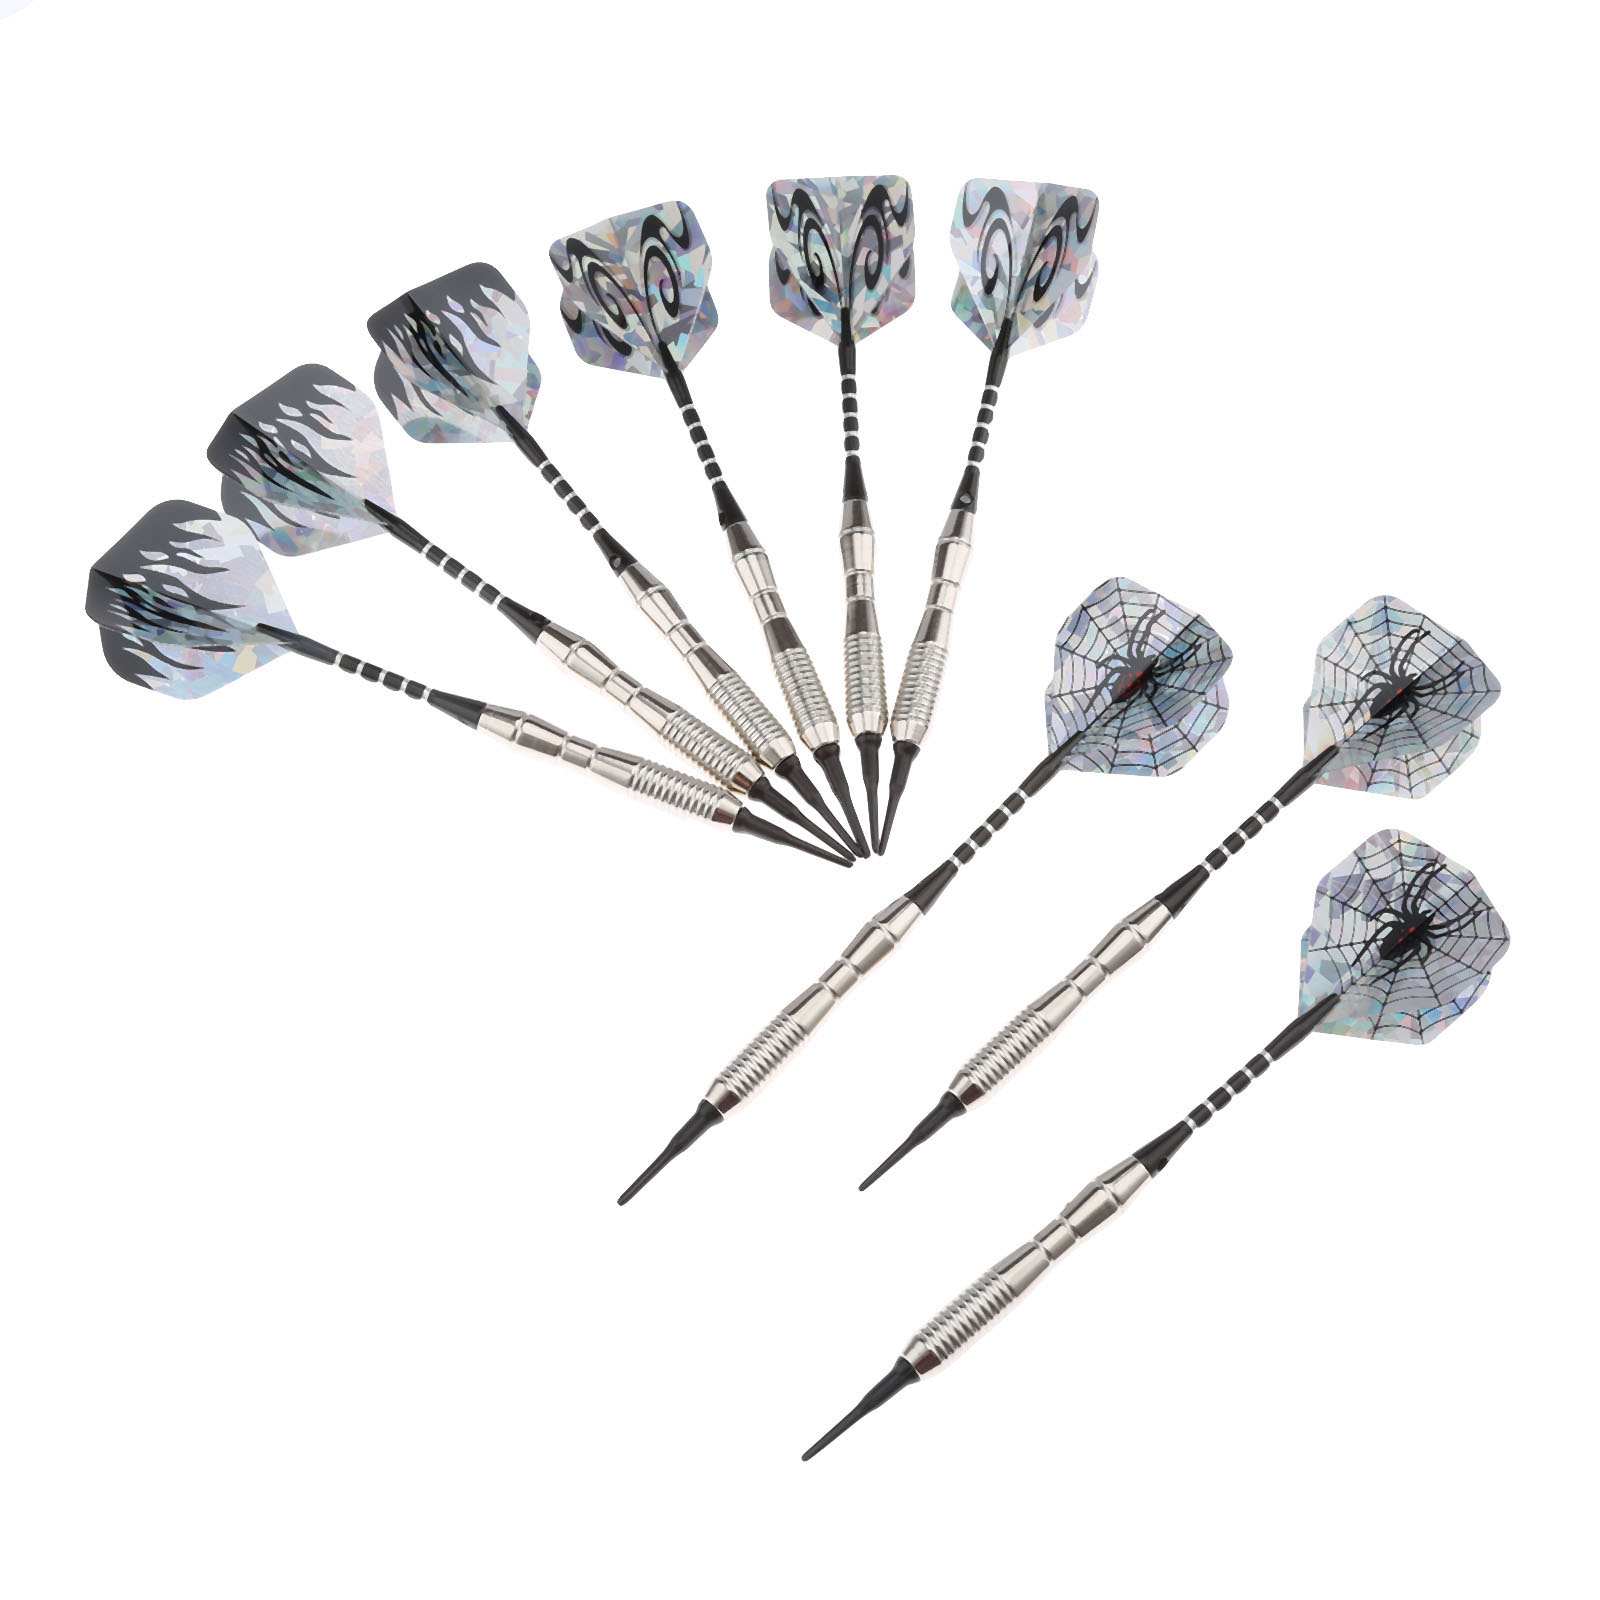 Aliexpress Buy 3 Sets 9pcs 18g Soft Tip Darts Dart For Electronic Dartboard With Steel